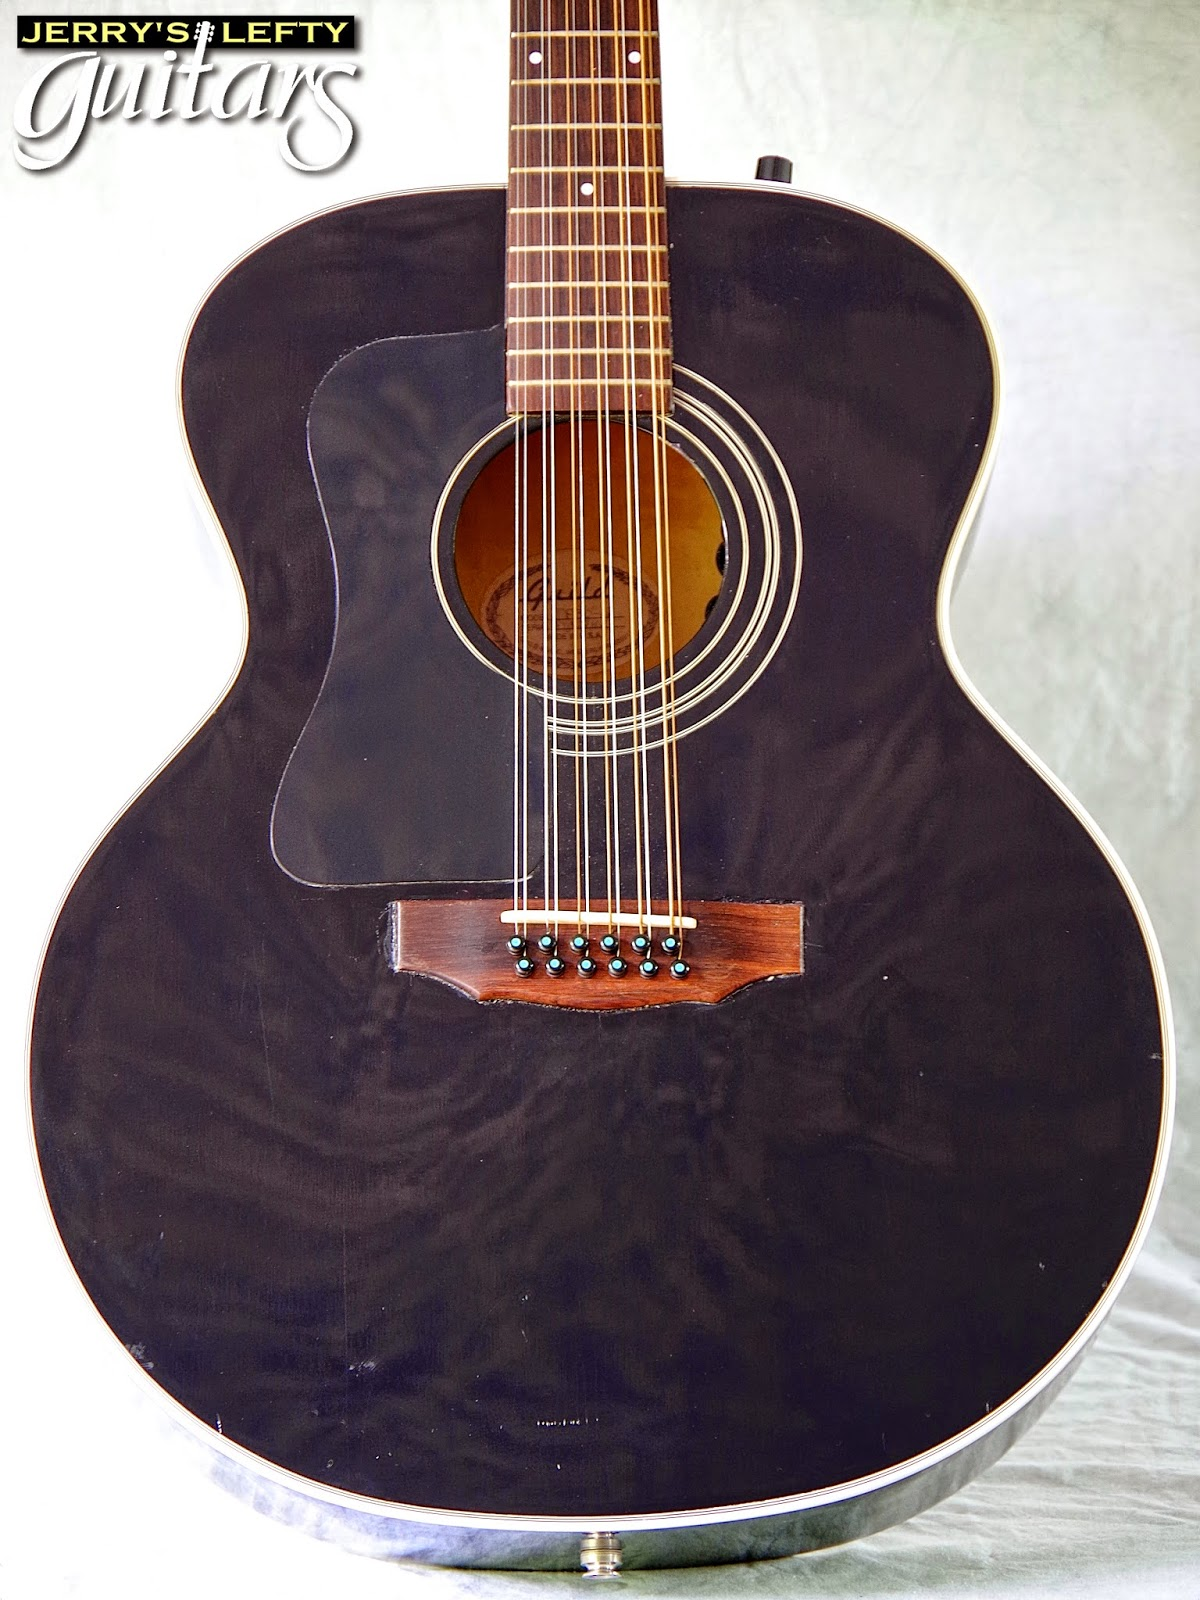 jerry 39 s lefty guitars newest guitar arrivals updated weekly 1997 guild jf30 12 string left. Black Bedroom Furniture Sets. Home Design Ideas